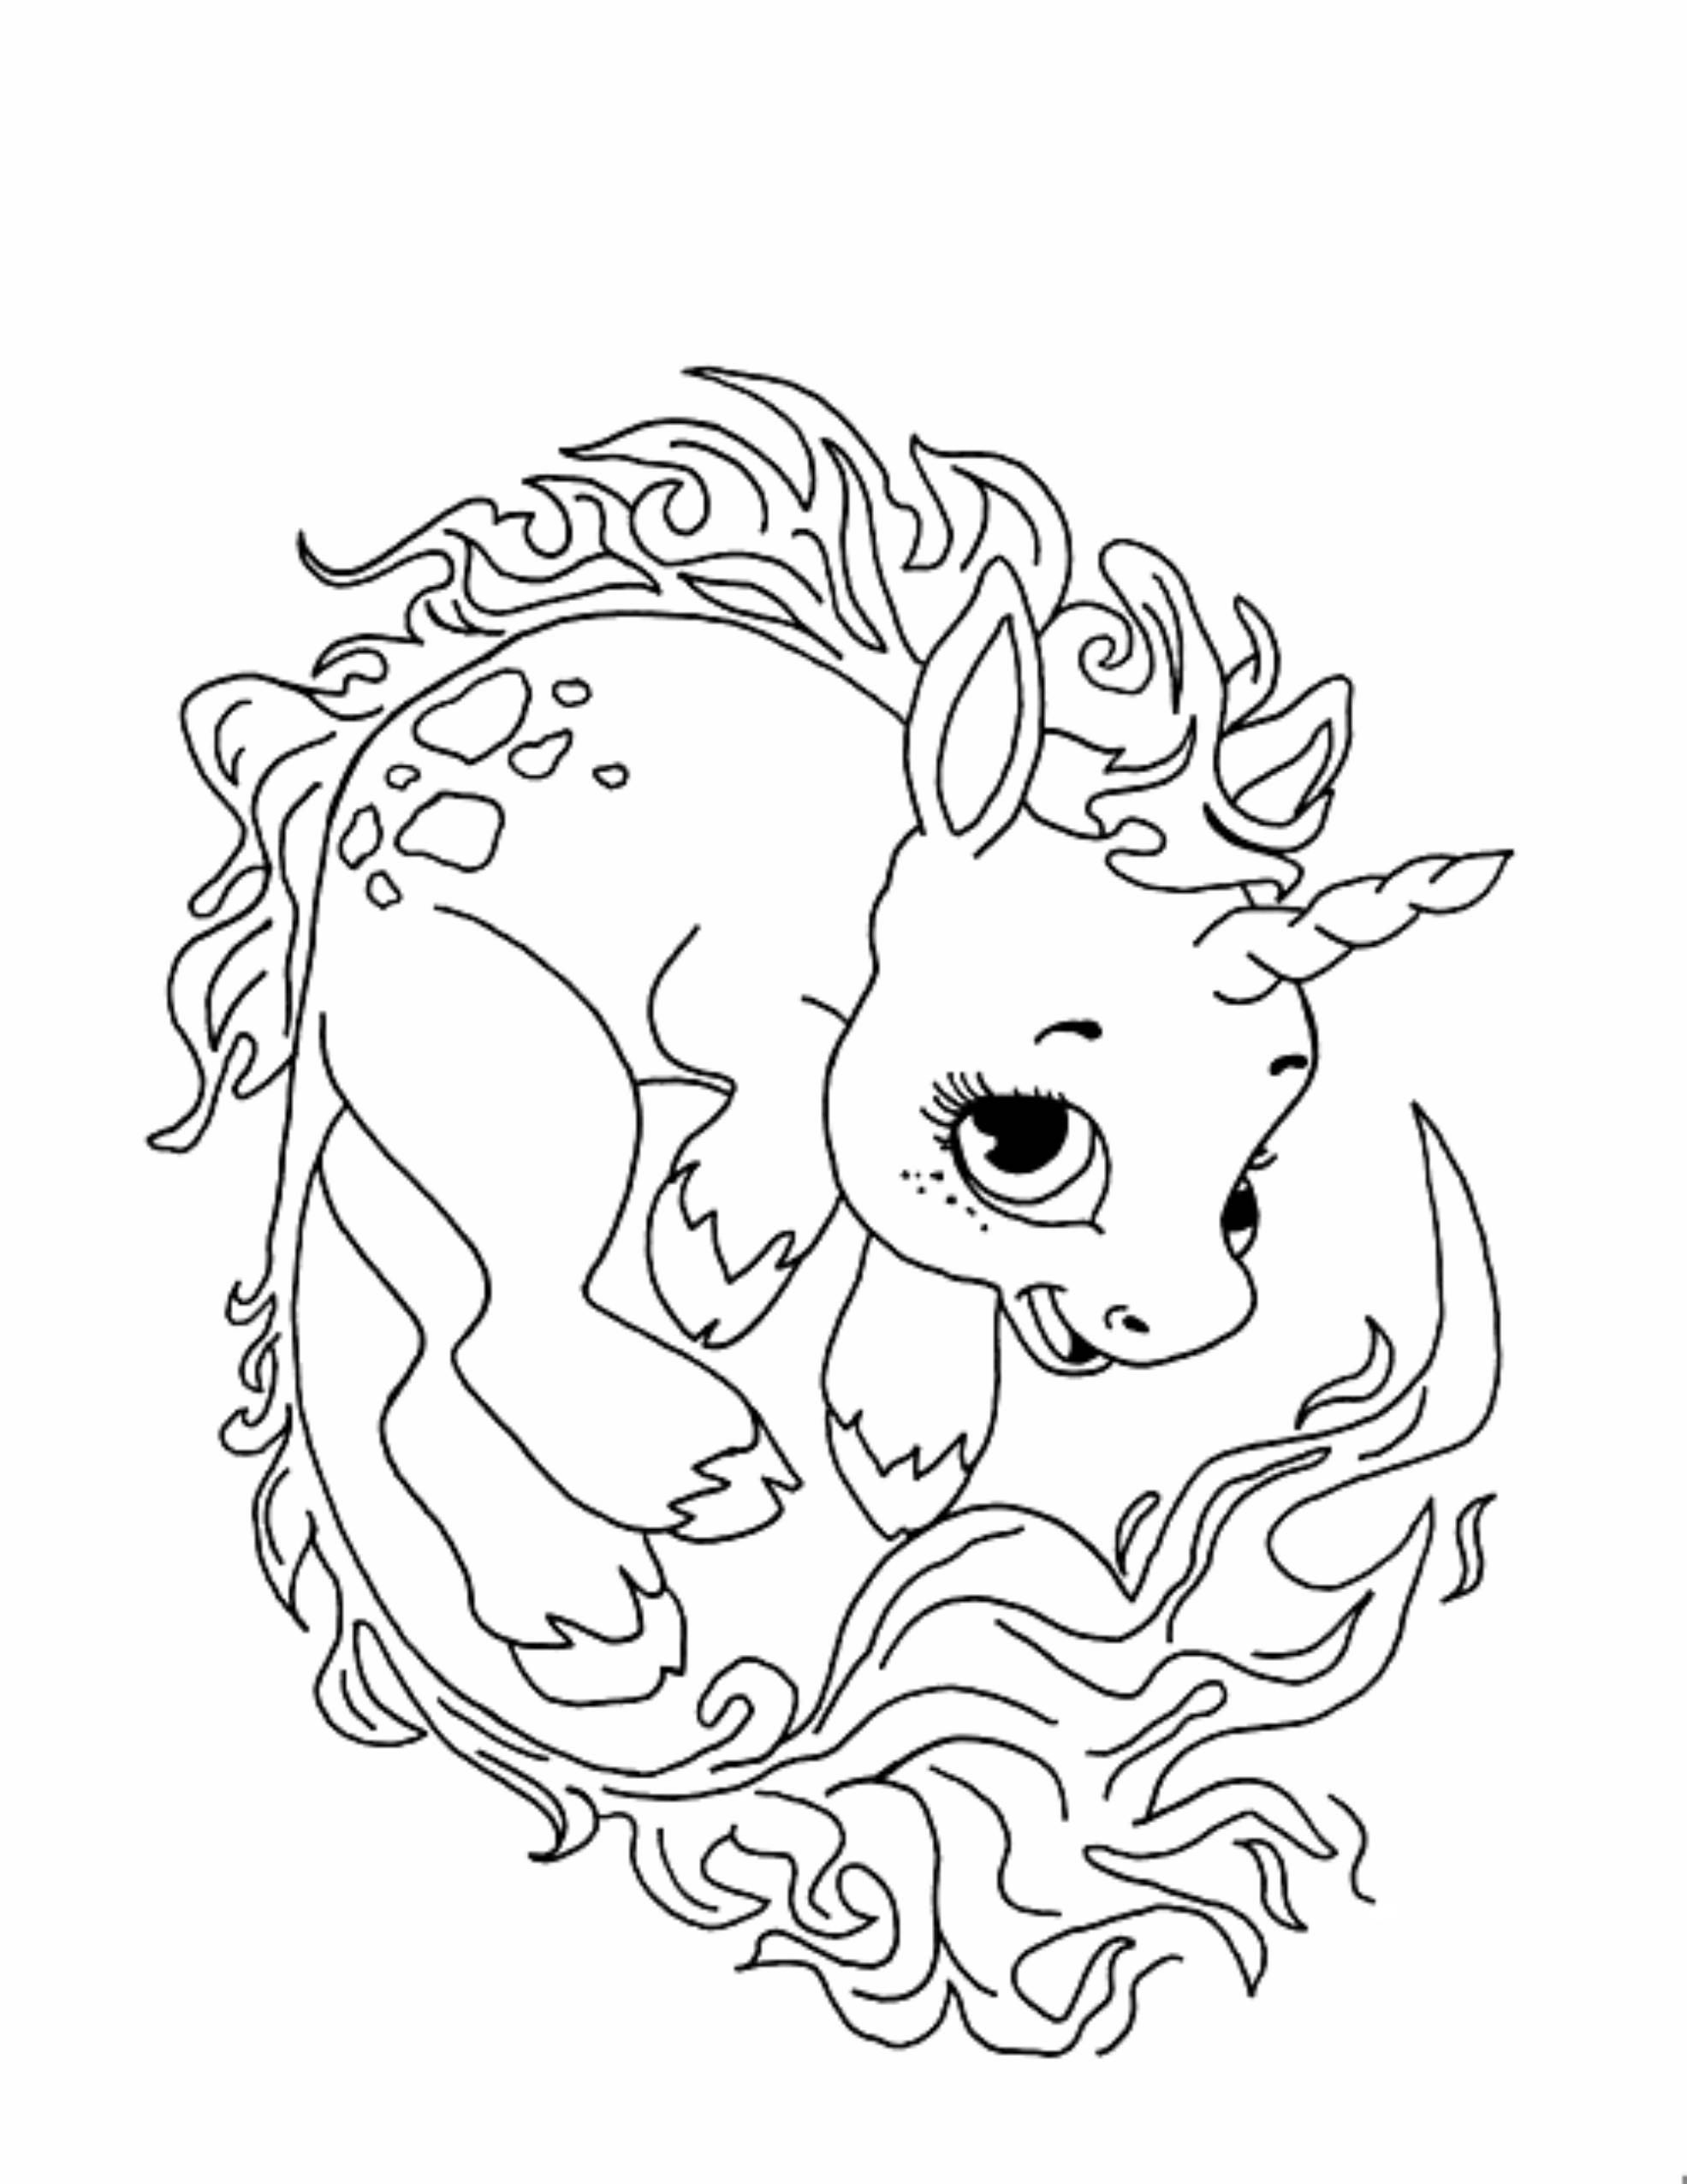 unicorn pictures for coloring print download unicorn coloring pages for children pictures unicorn for coloring